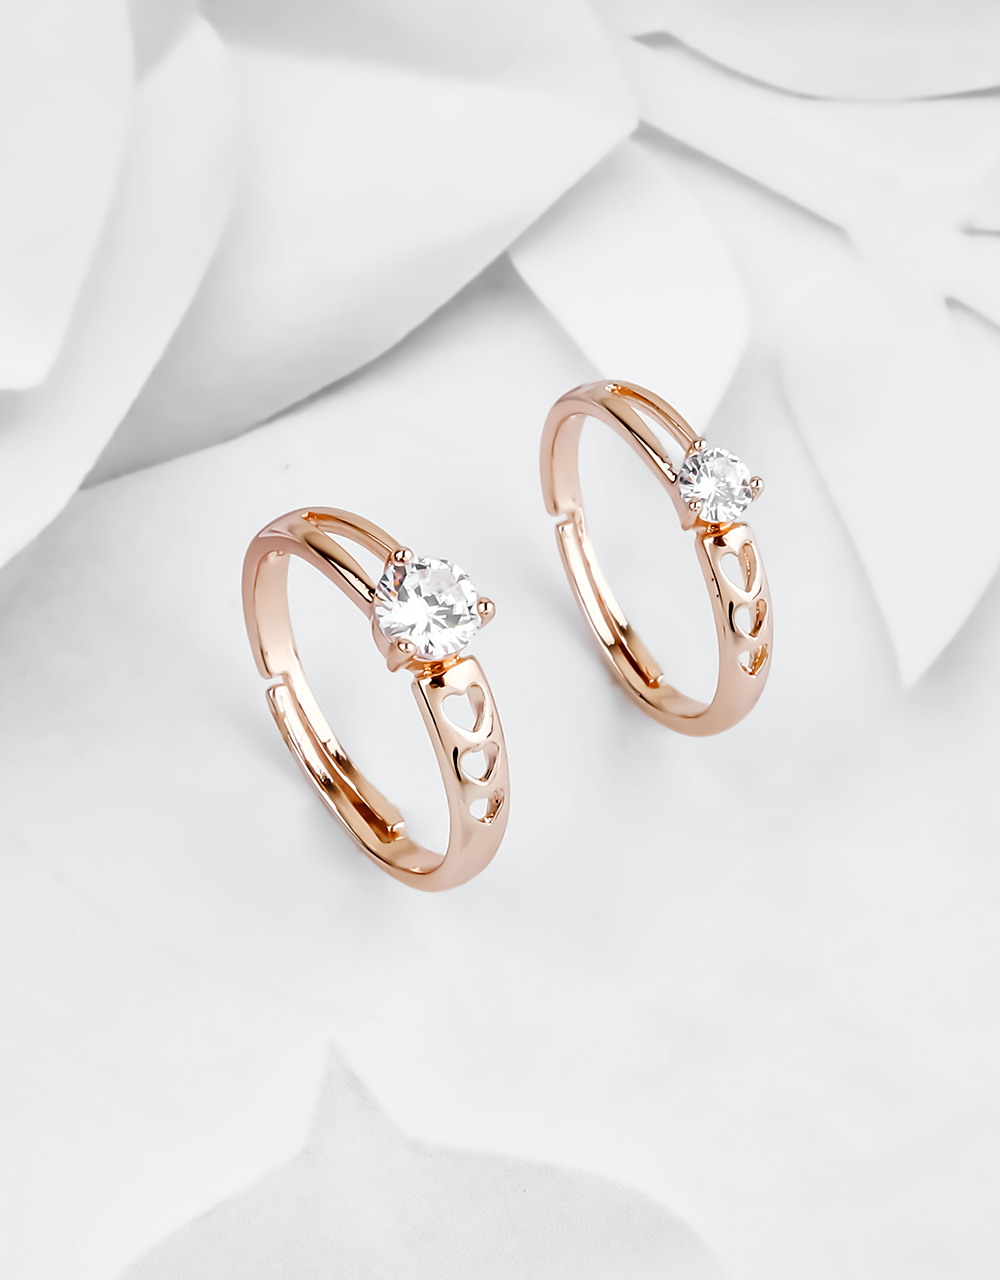 Rose Gold Finish Solitaire Stone Couple Rings